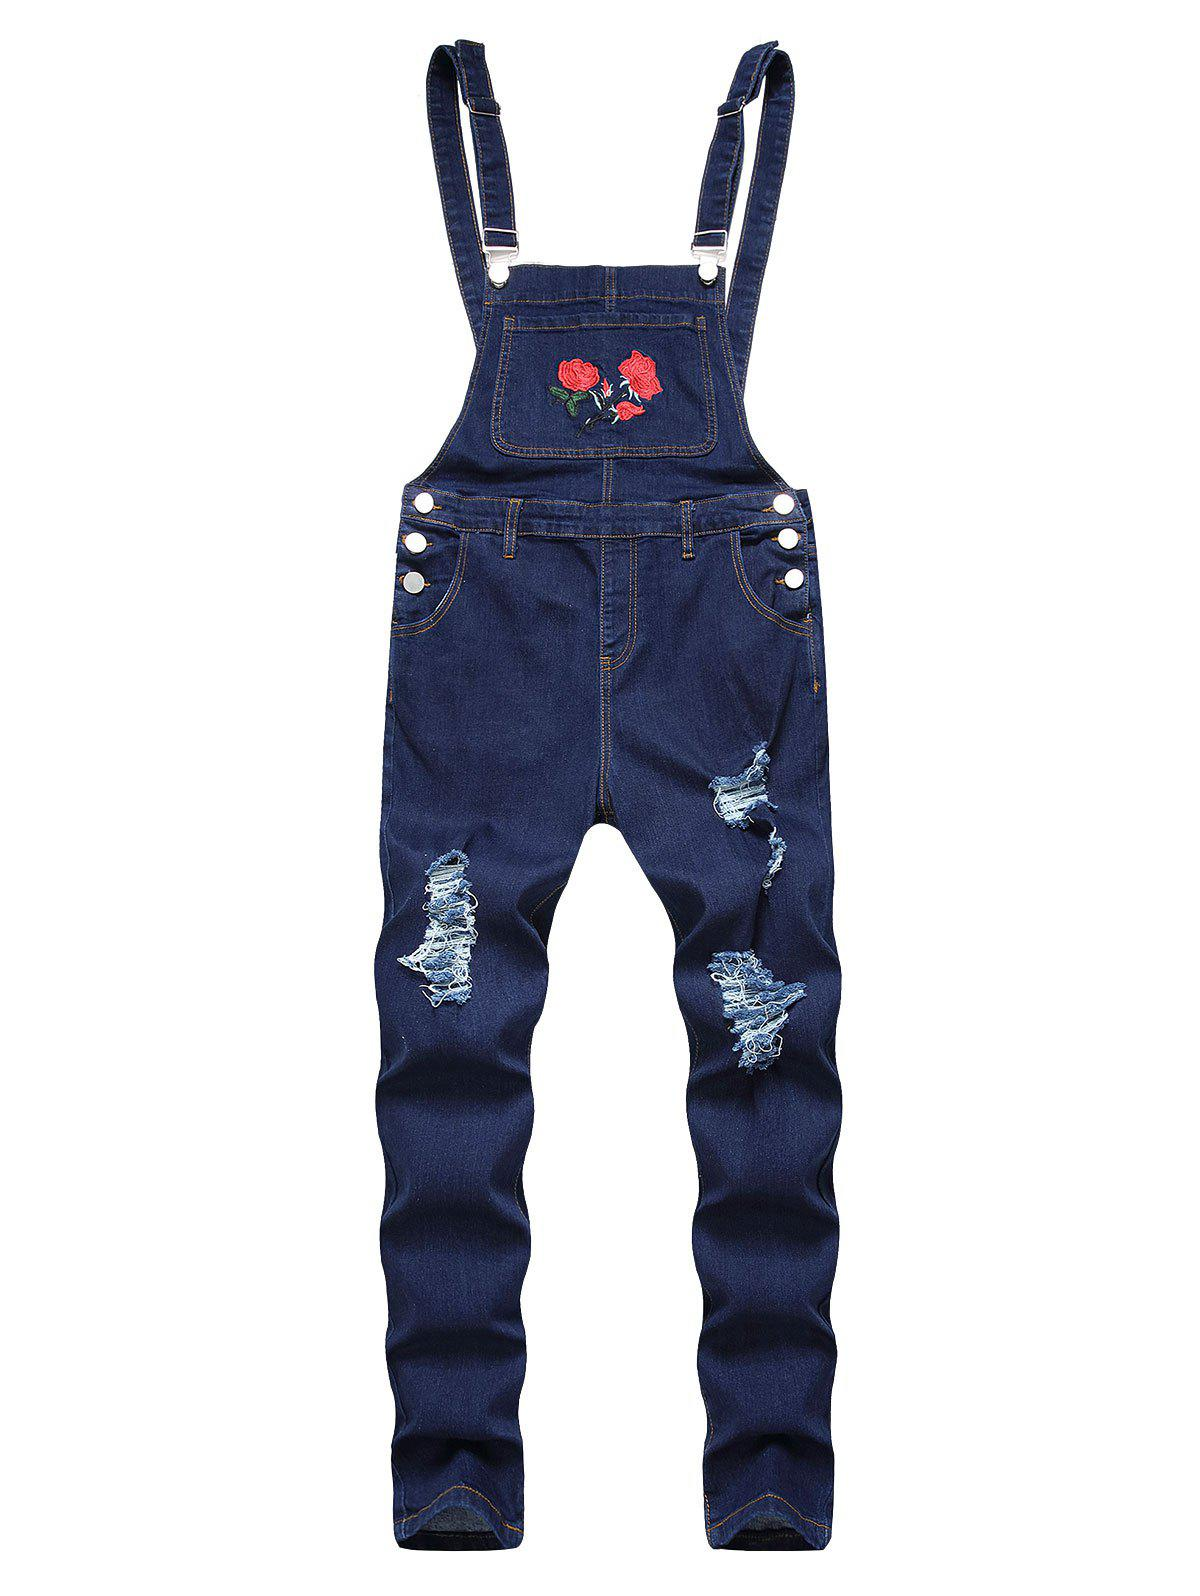 Ripped Flower Embroidered Tapered Overall Jeans - DEEP BLUE 36